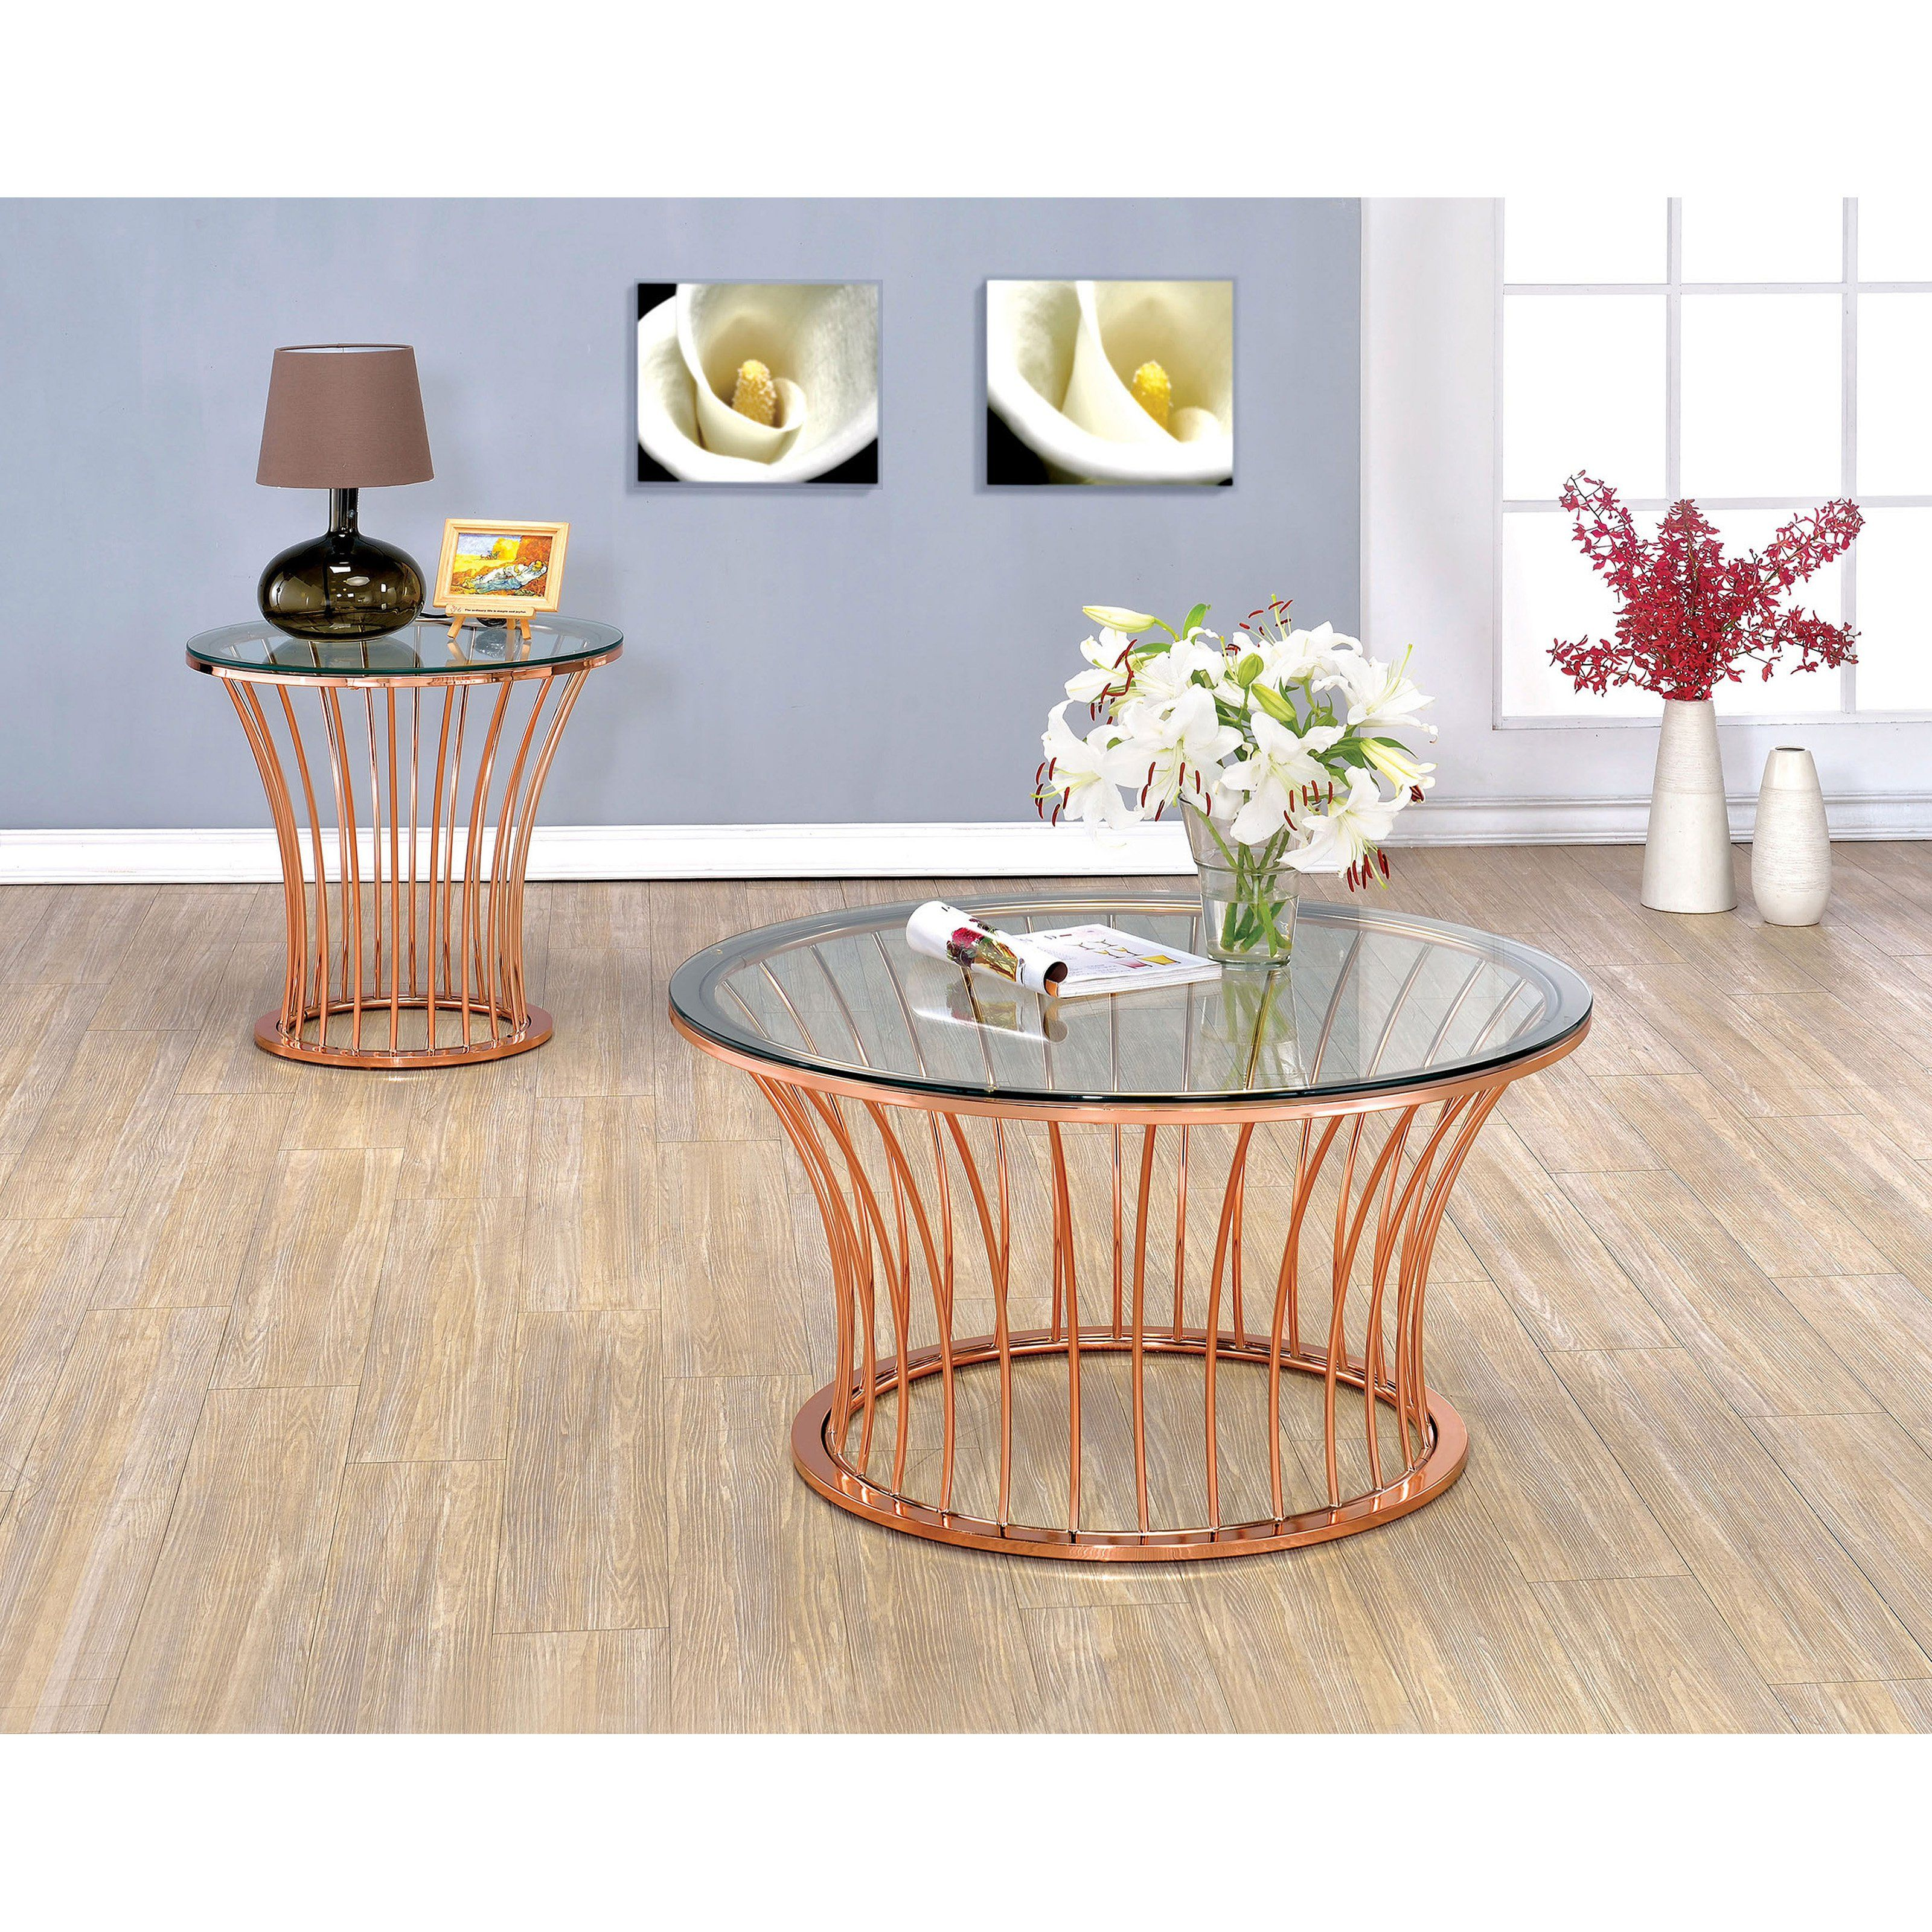 Furniture of America Roselyn Flared Bar 2 Piece Coffee Table Set